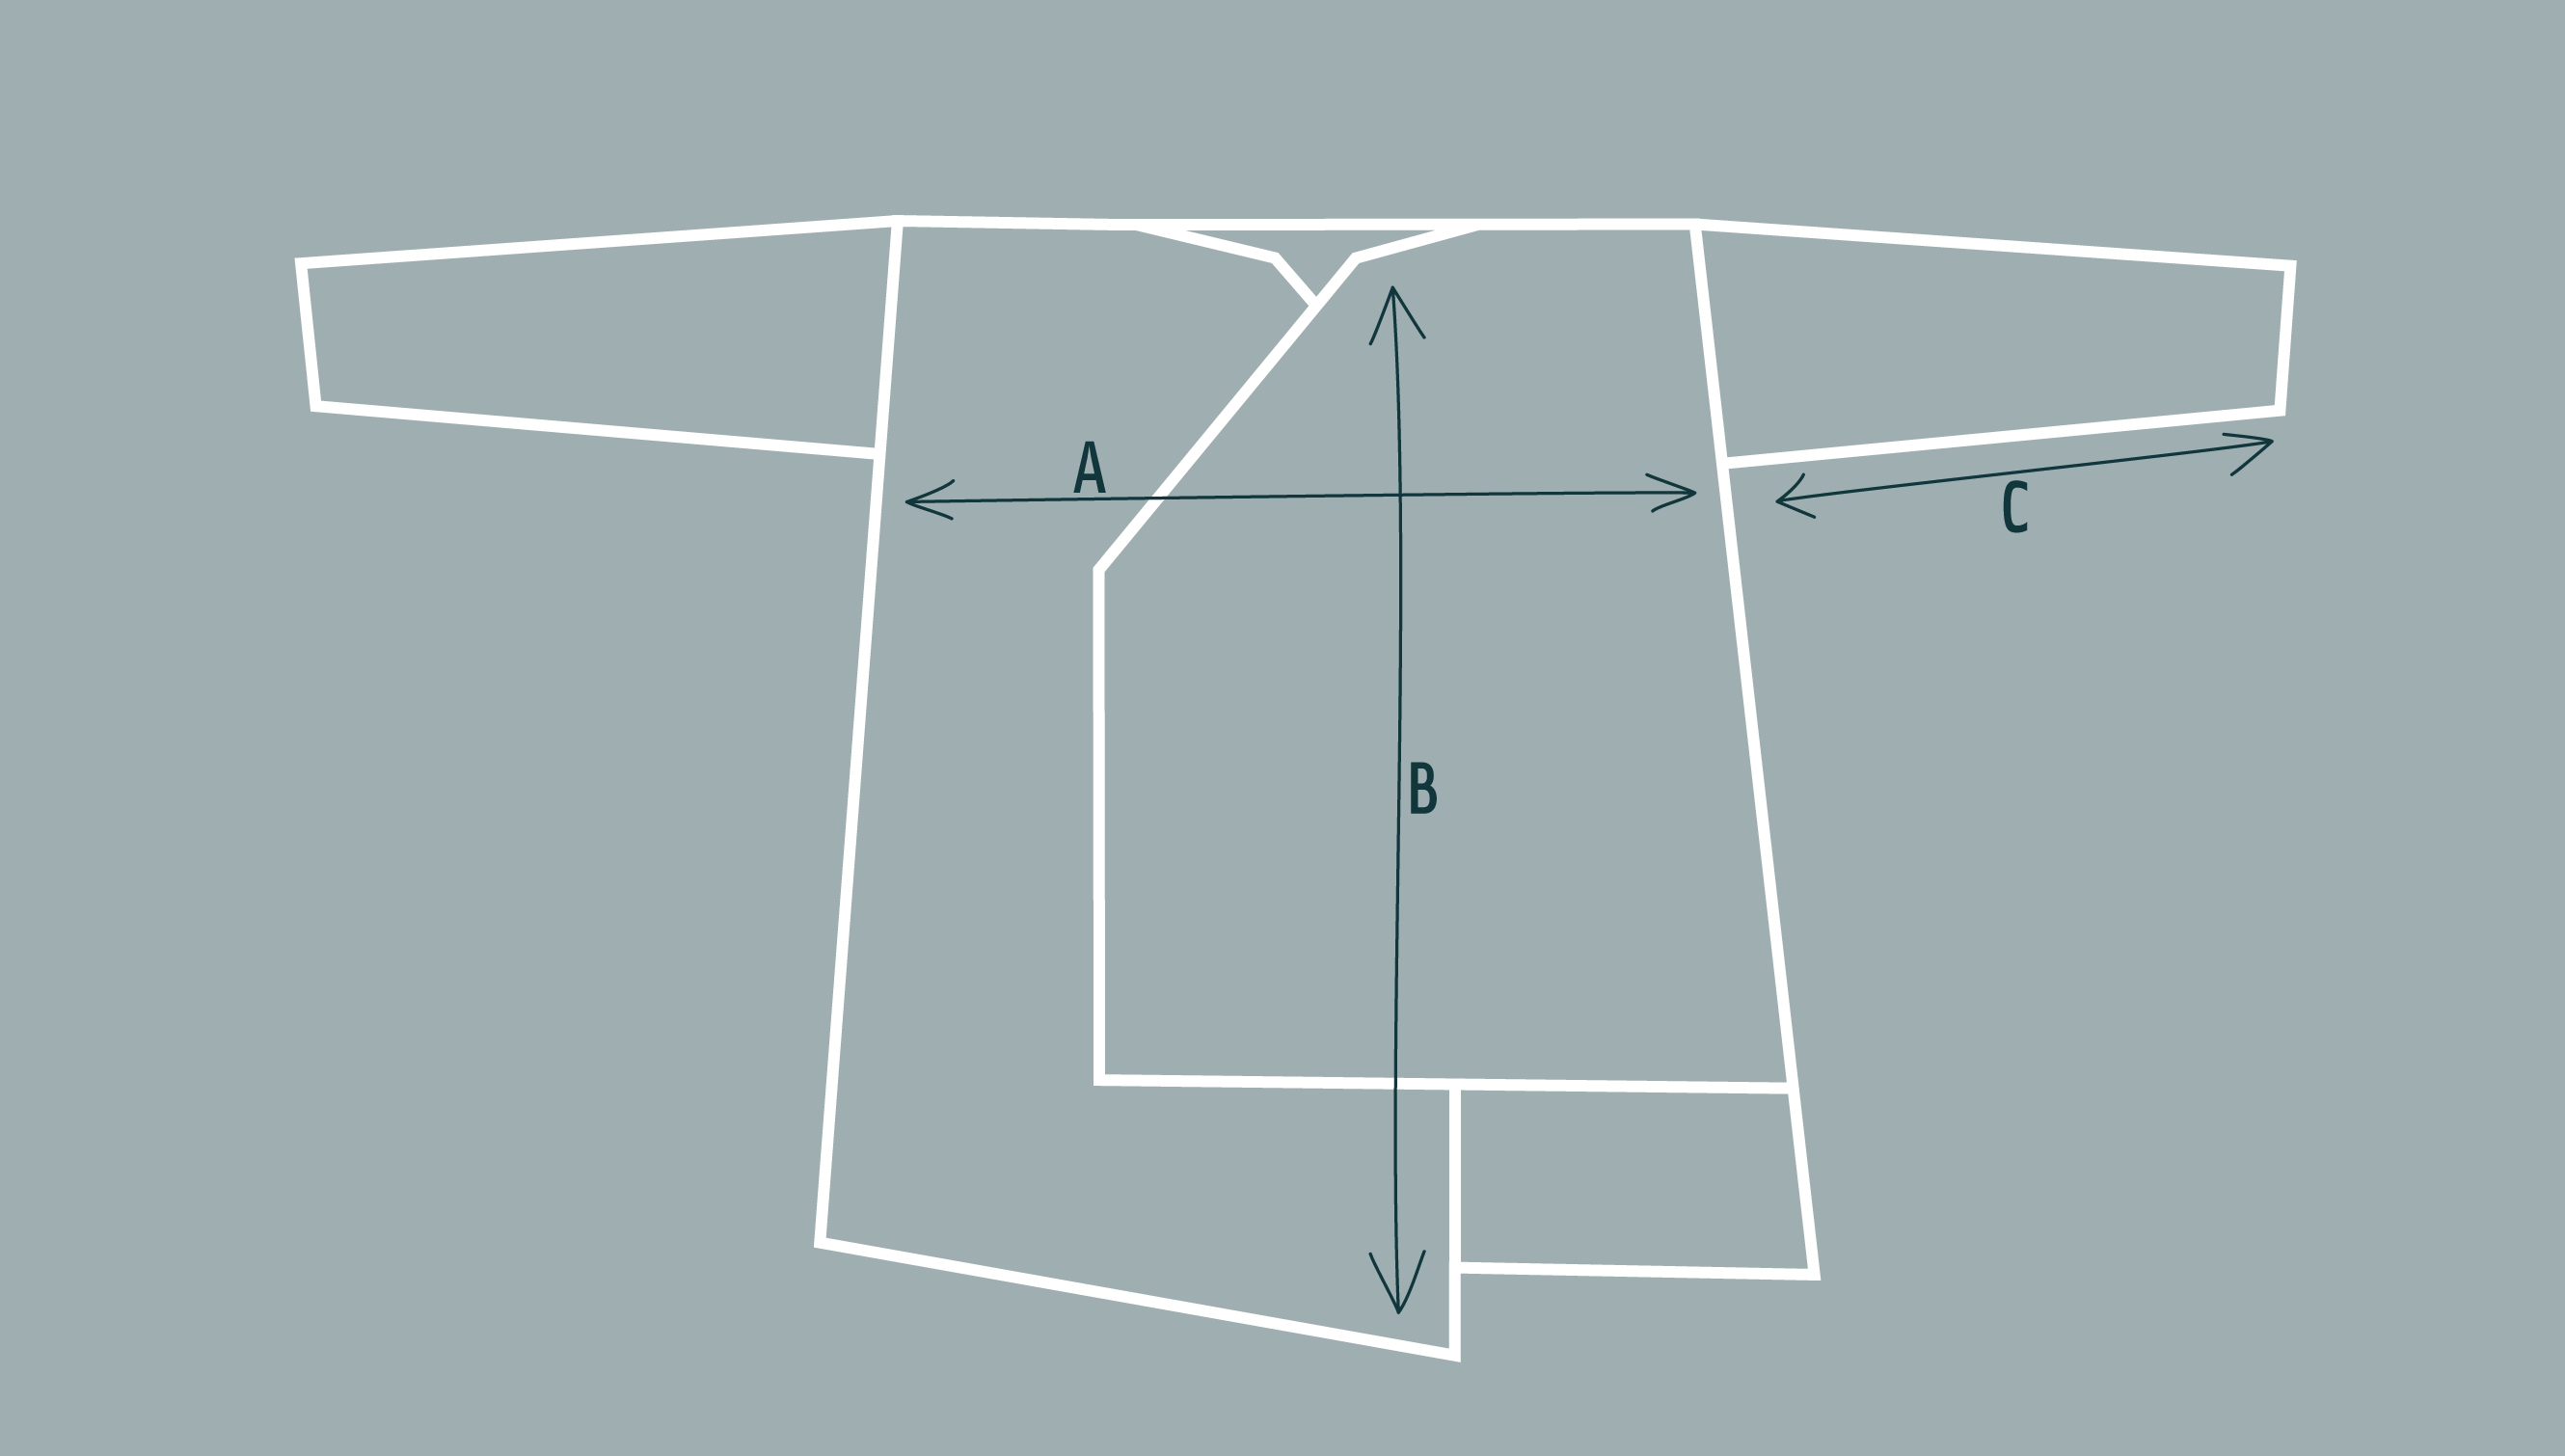 Inklines asymmetric coatigan jacket - diagram to show dimensions and shape